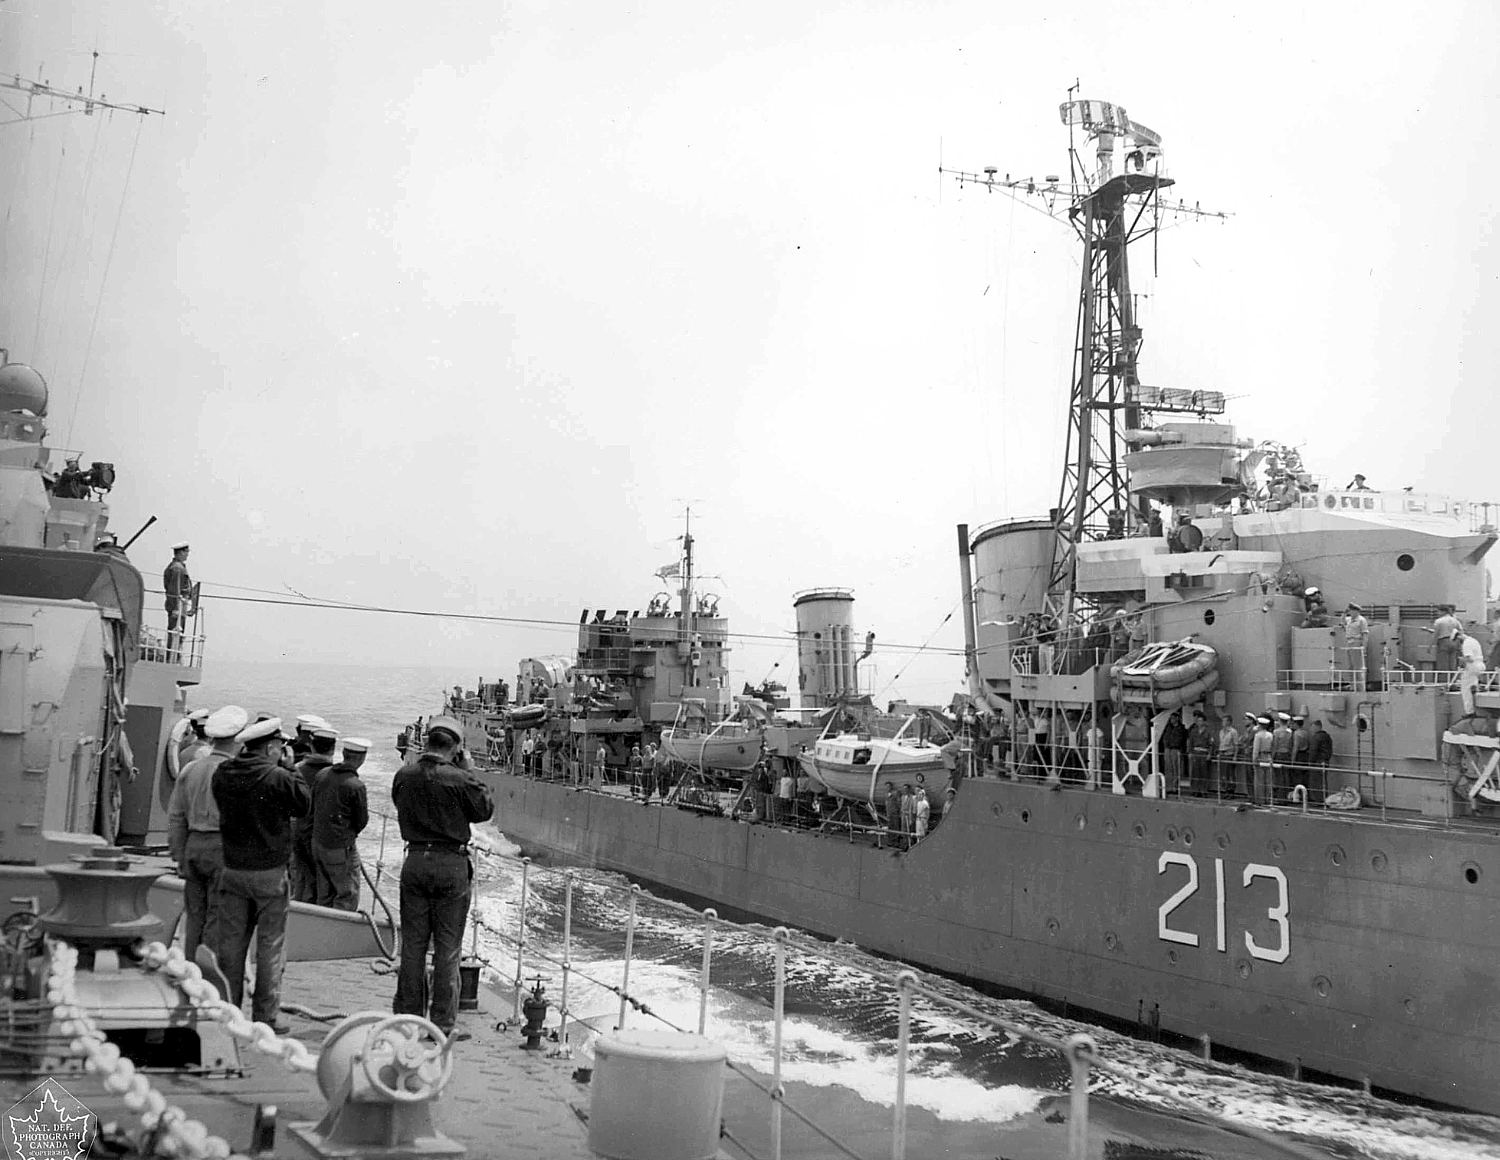 HMCS Nootka during a jackstay transfer, 1953